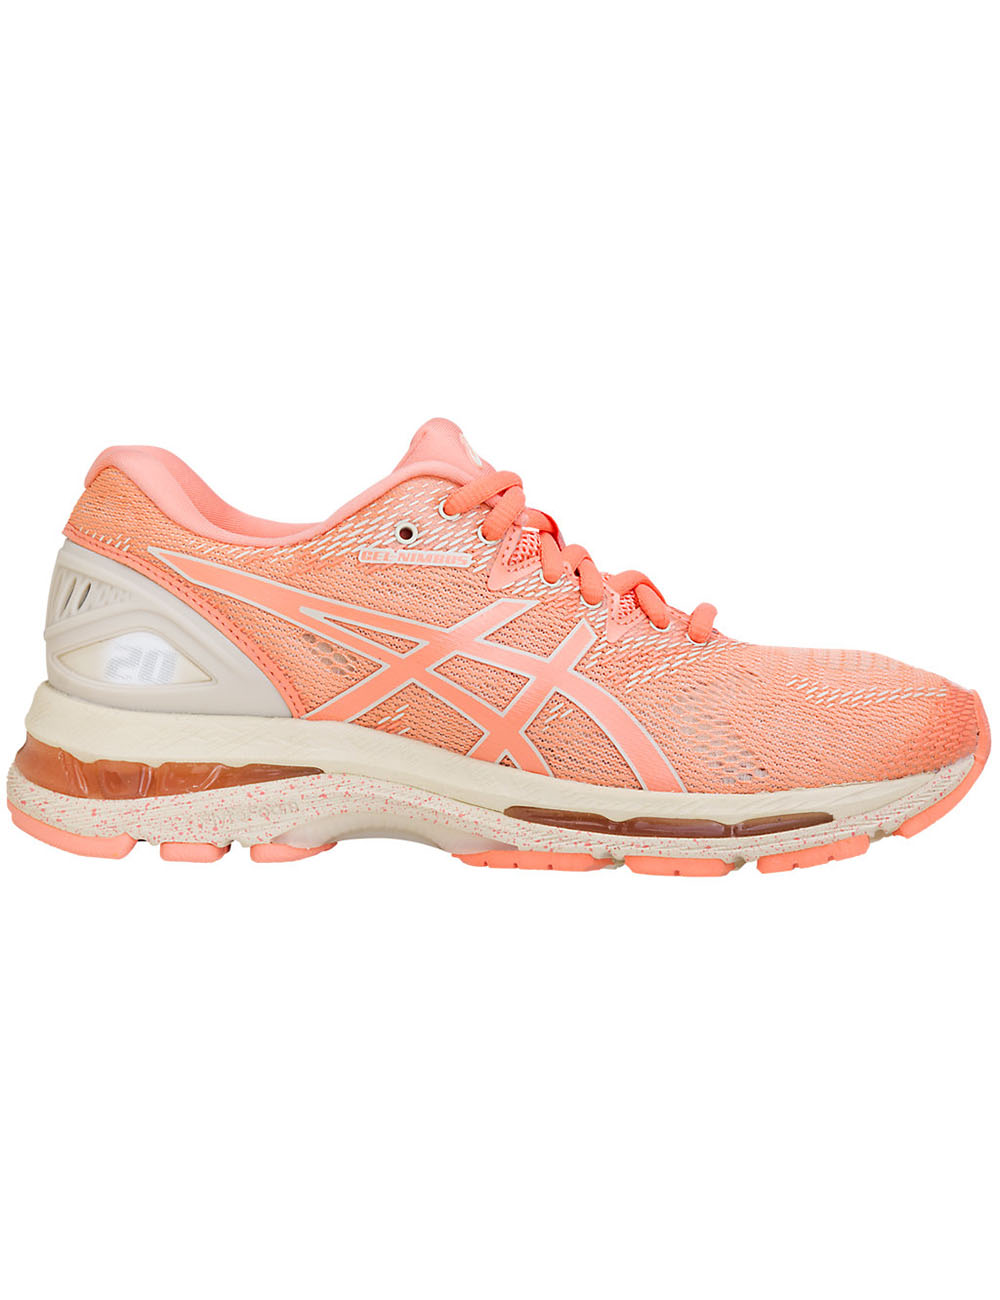 Asics GEL-NIMBUS 20 SP W - Cherry / Coffee / Blossom